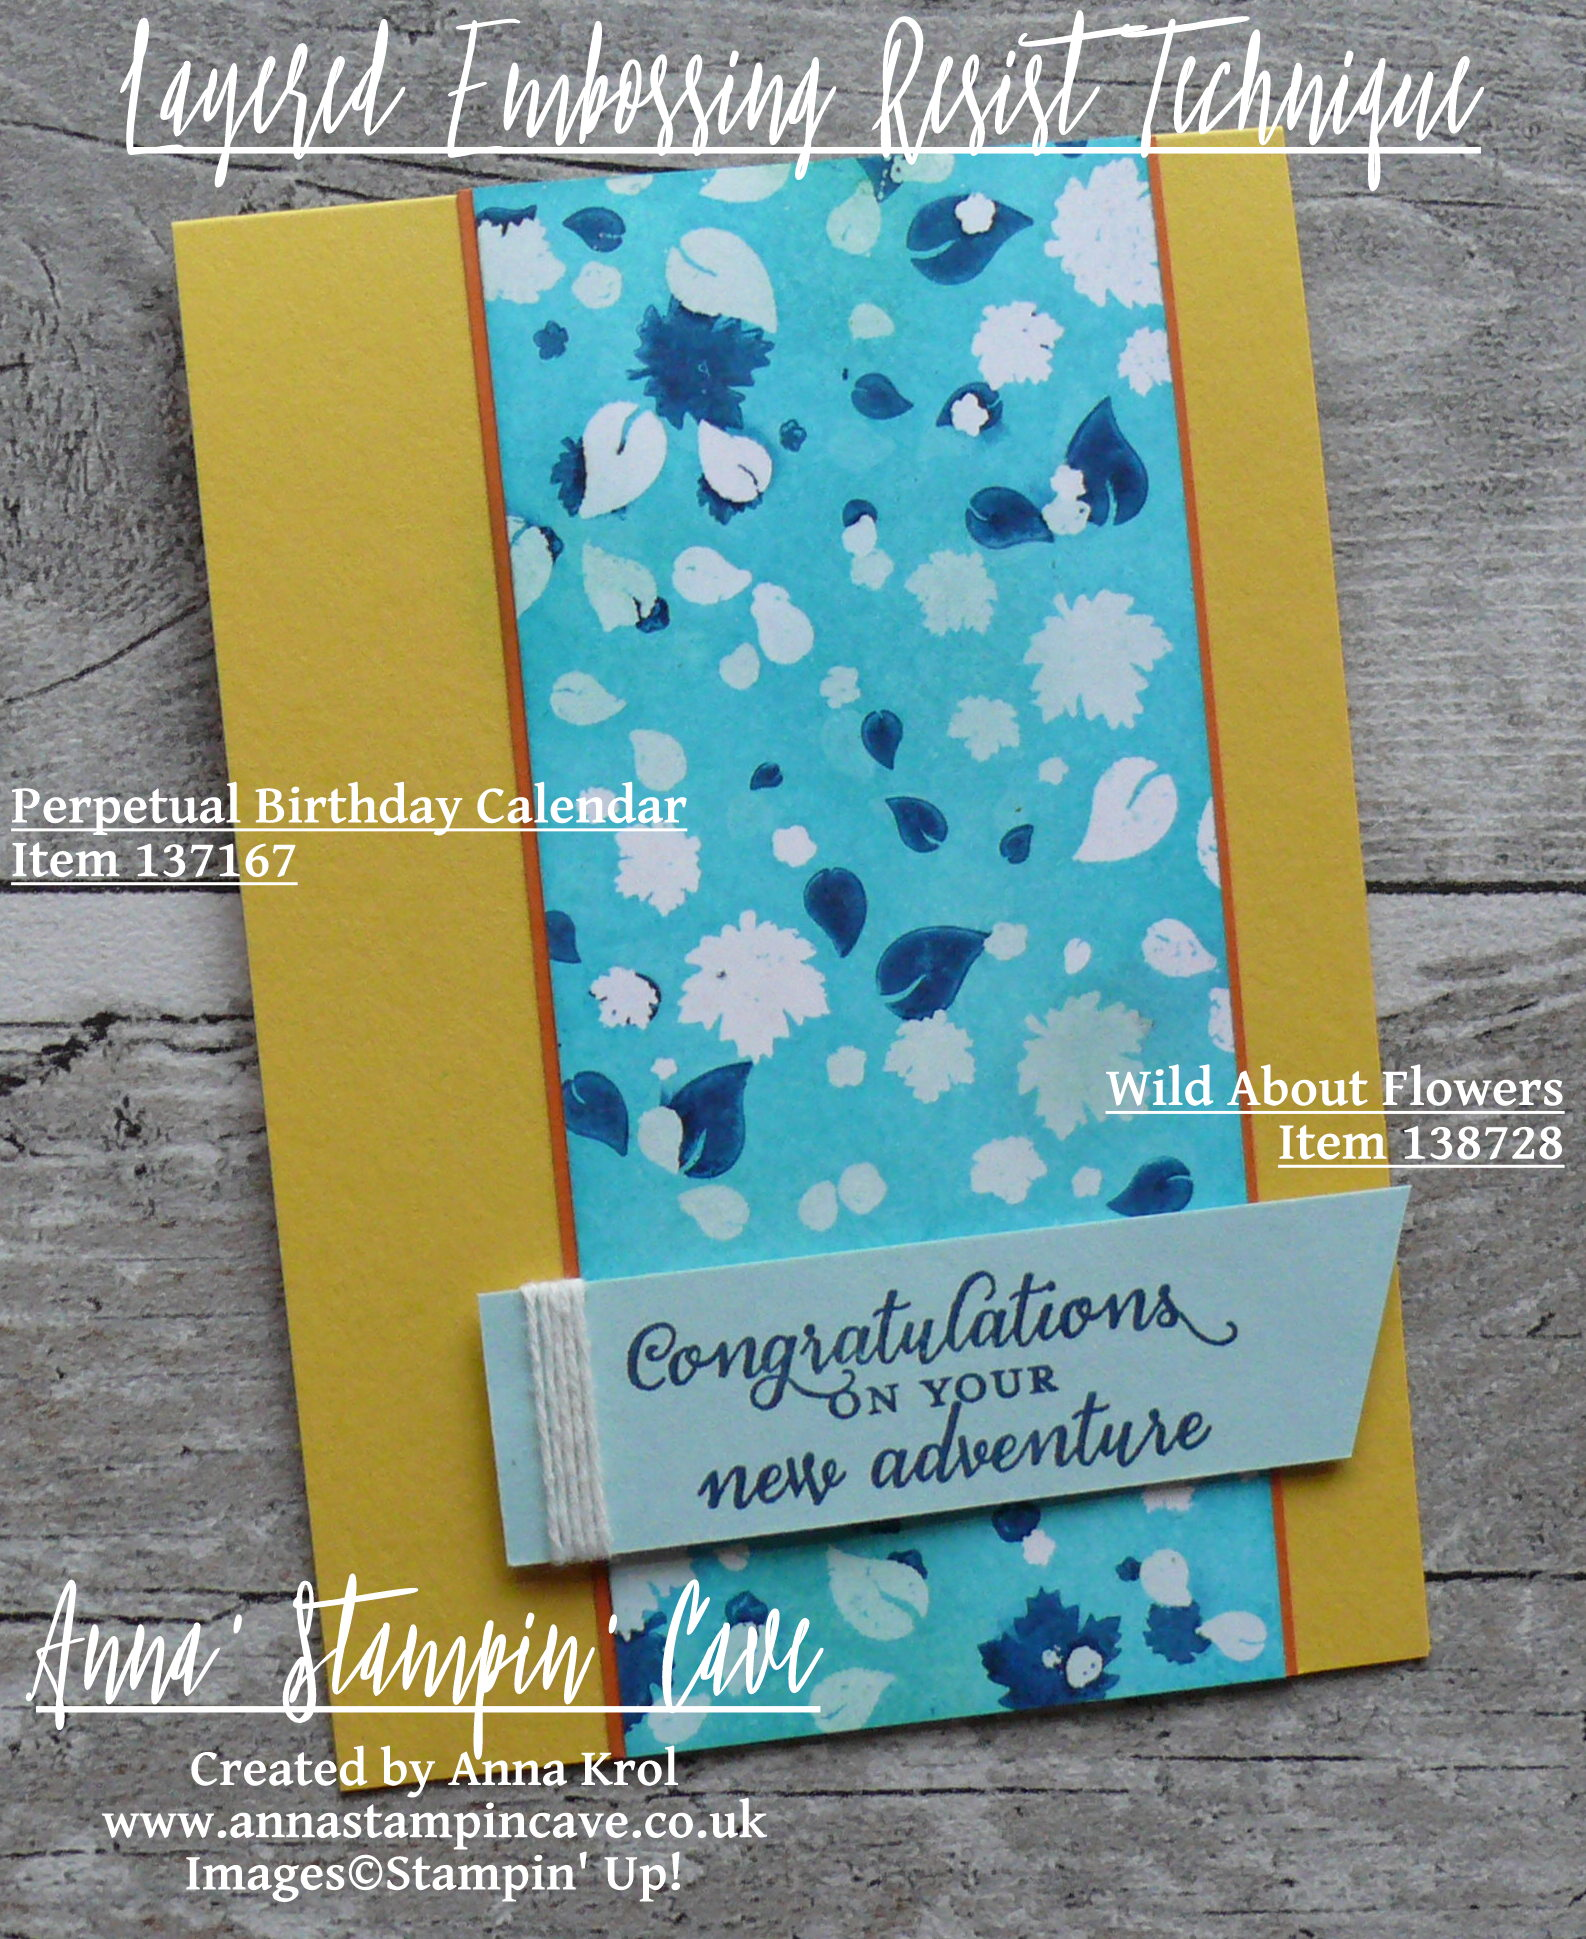 anna-stampin-cave-layered-embossing-resist-technique-using-perpetual-birthday-calendar-and-wild-about-flowers-stamp-sets